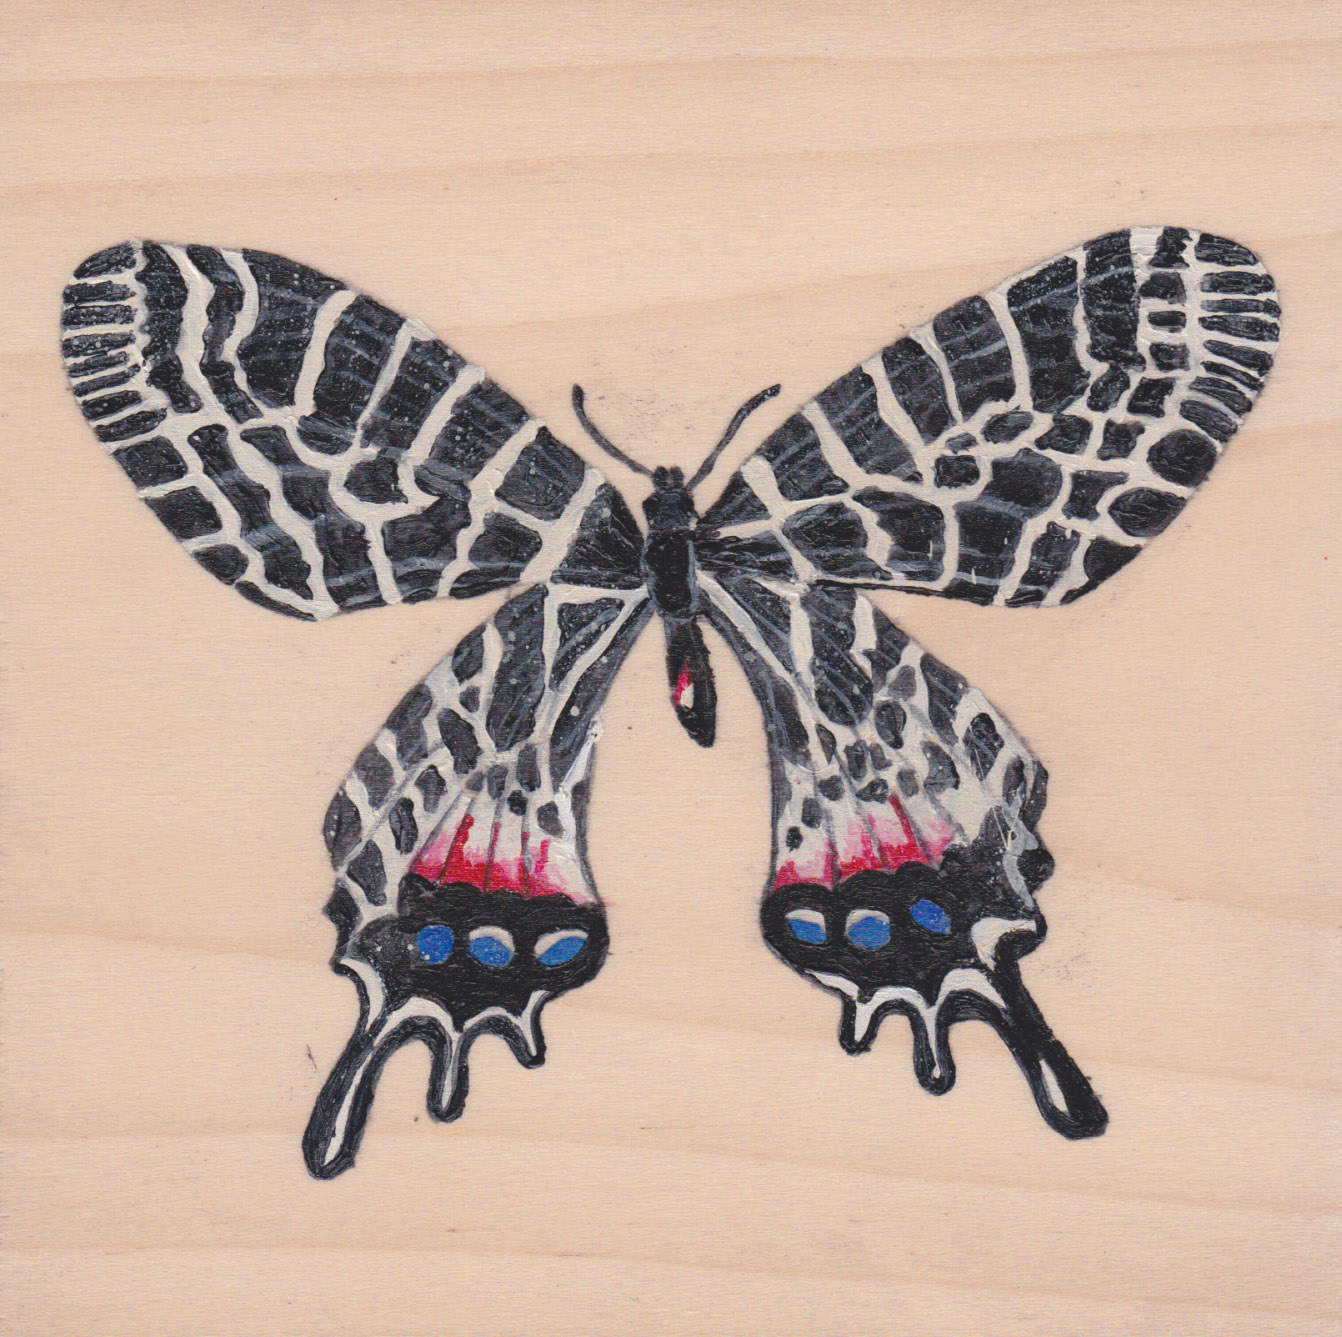 Bhutanitis Ludlowi Butterfly_Painting on wood_01.jpg